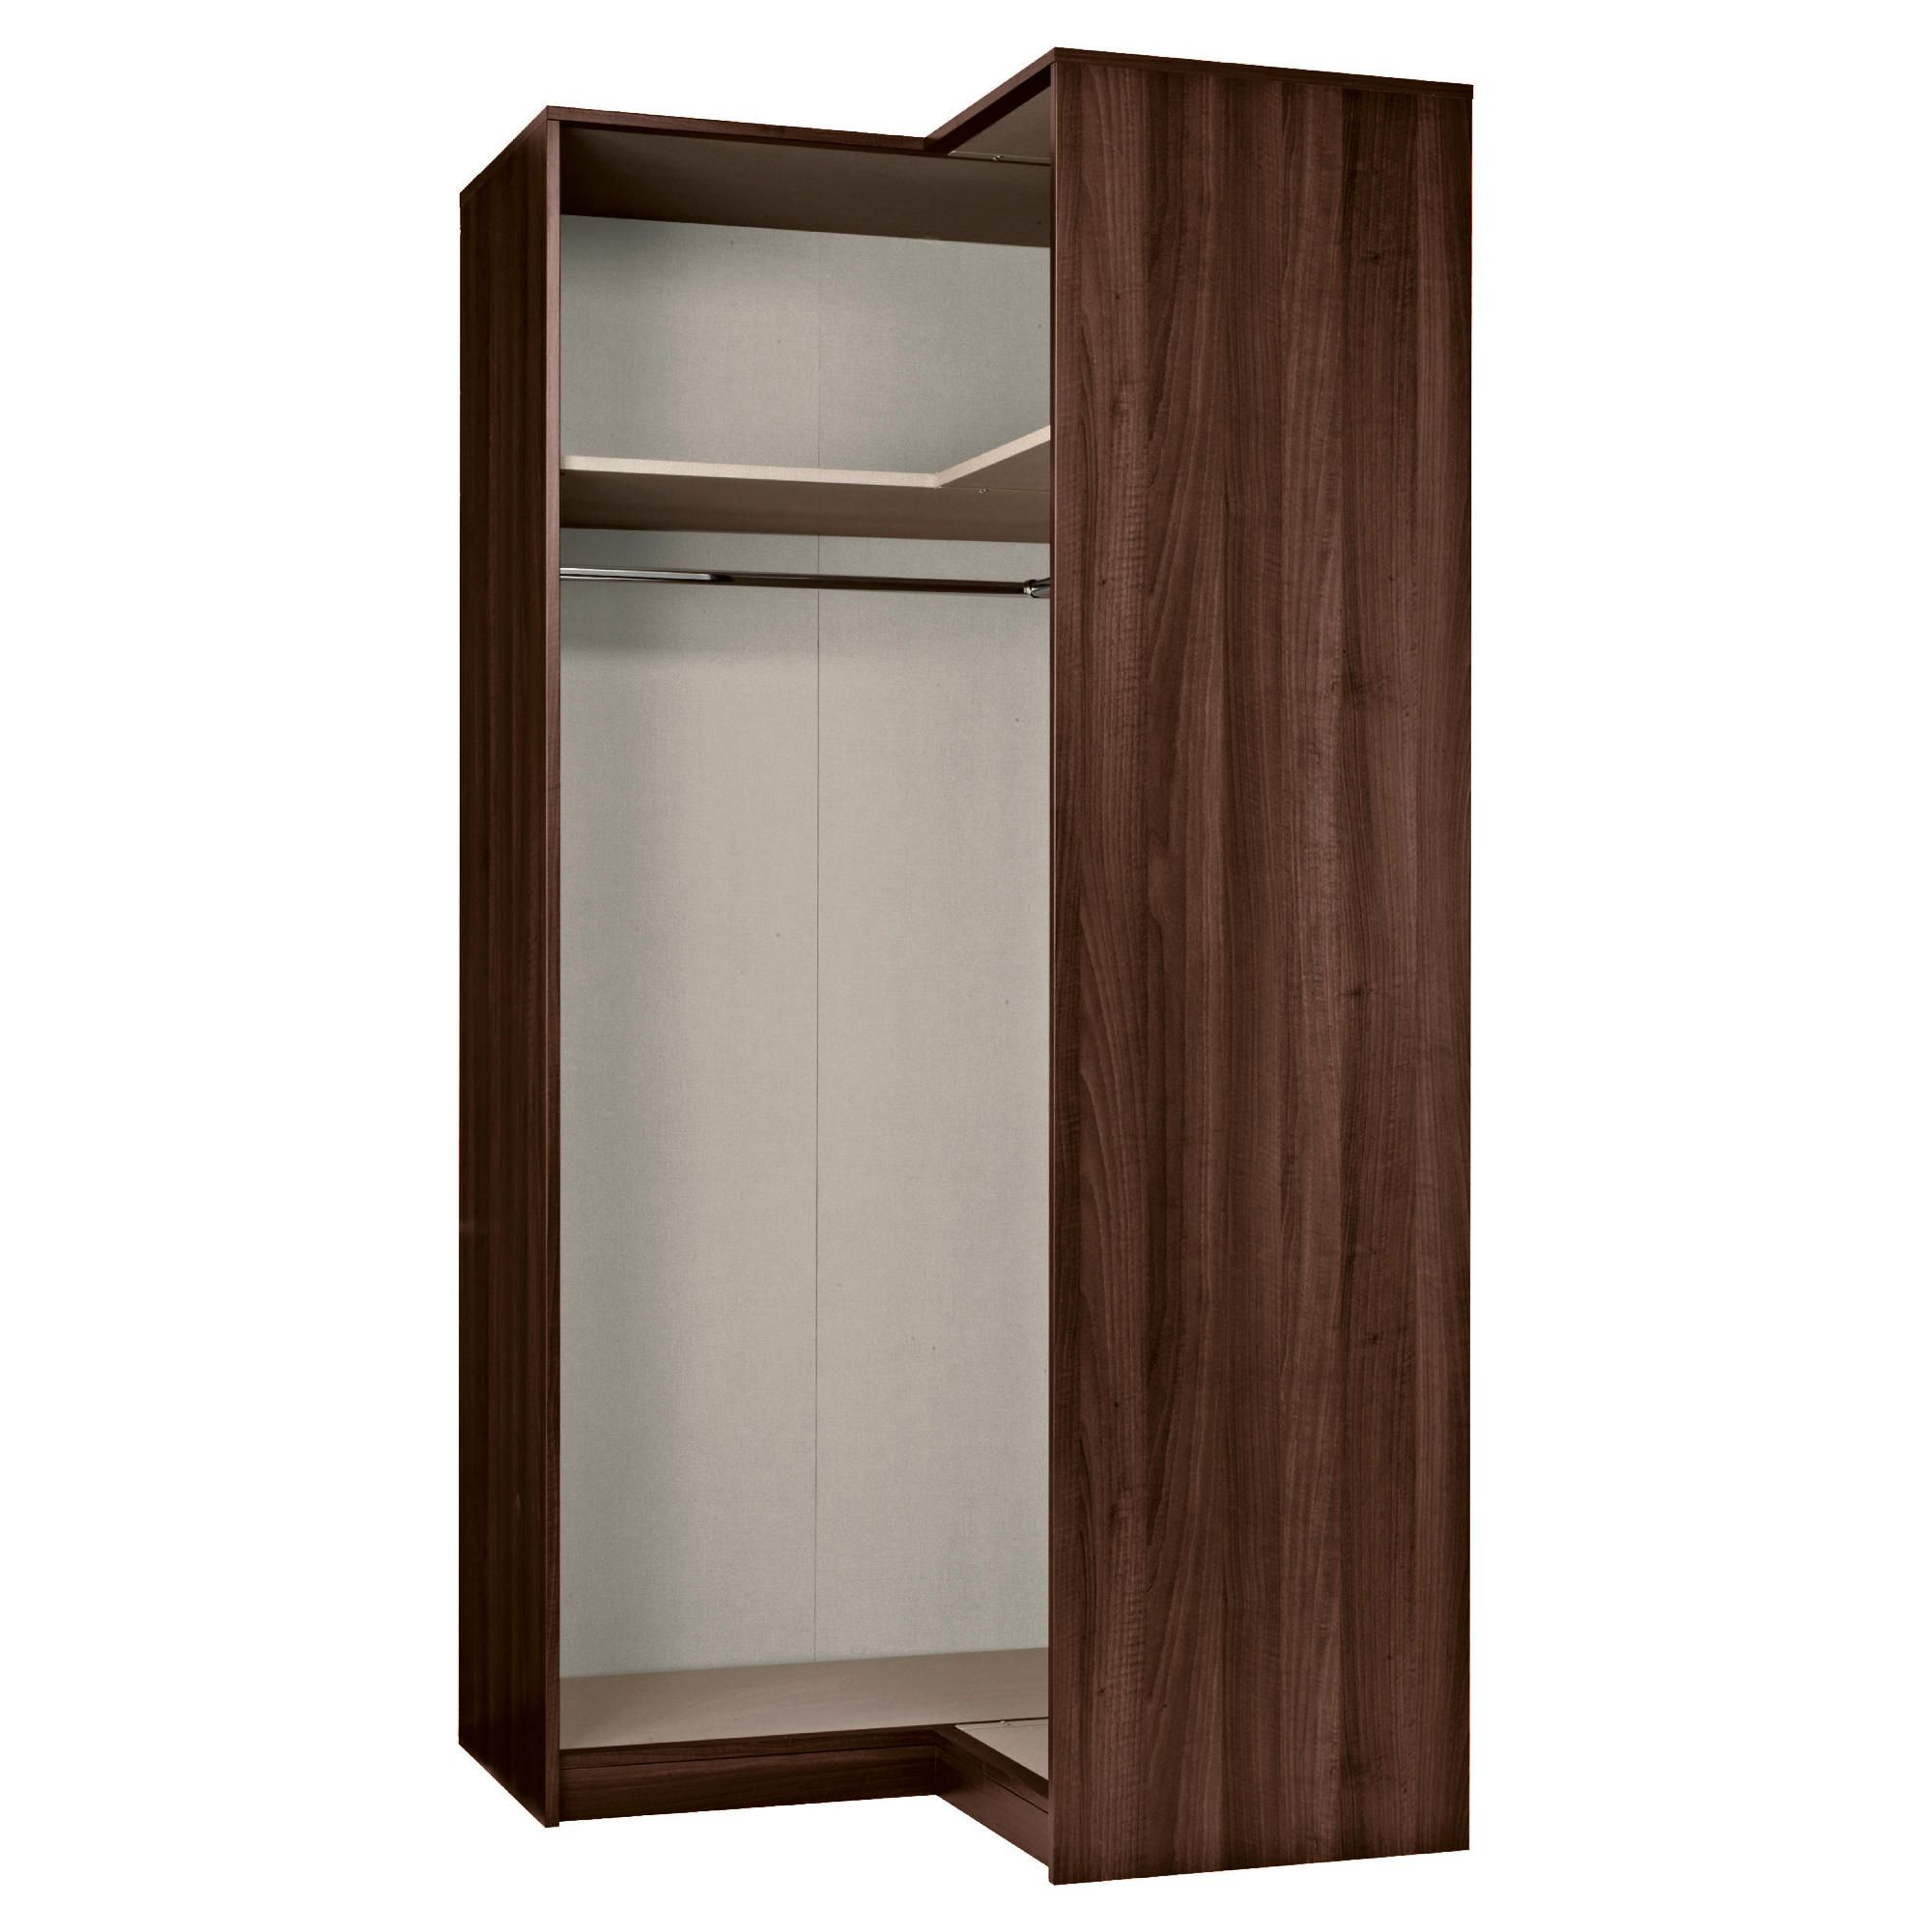 Modular Corner Wardrobe Frame, Walnut-Effect at Tesco Direct